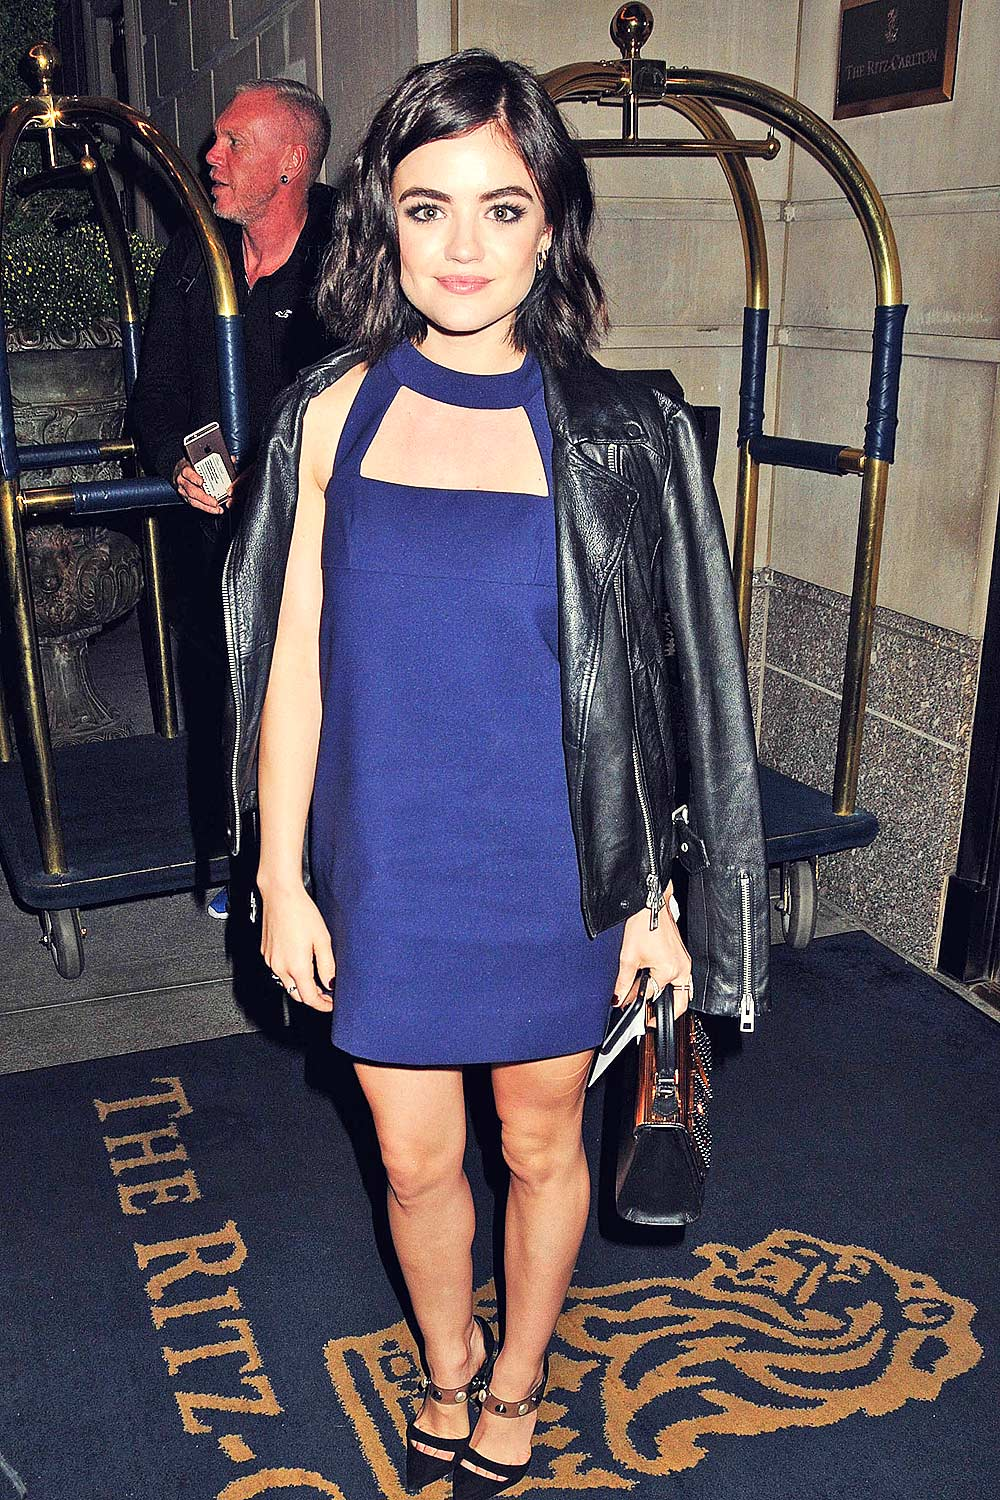 Lucy Hale at her Hotel in NYC